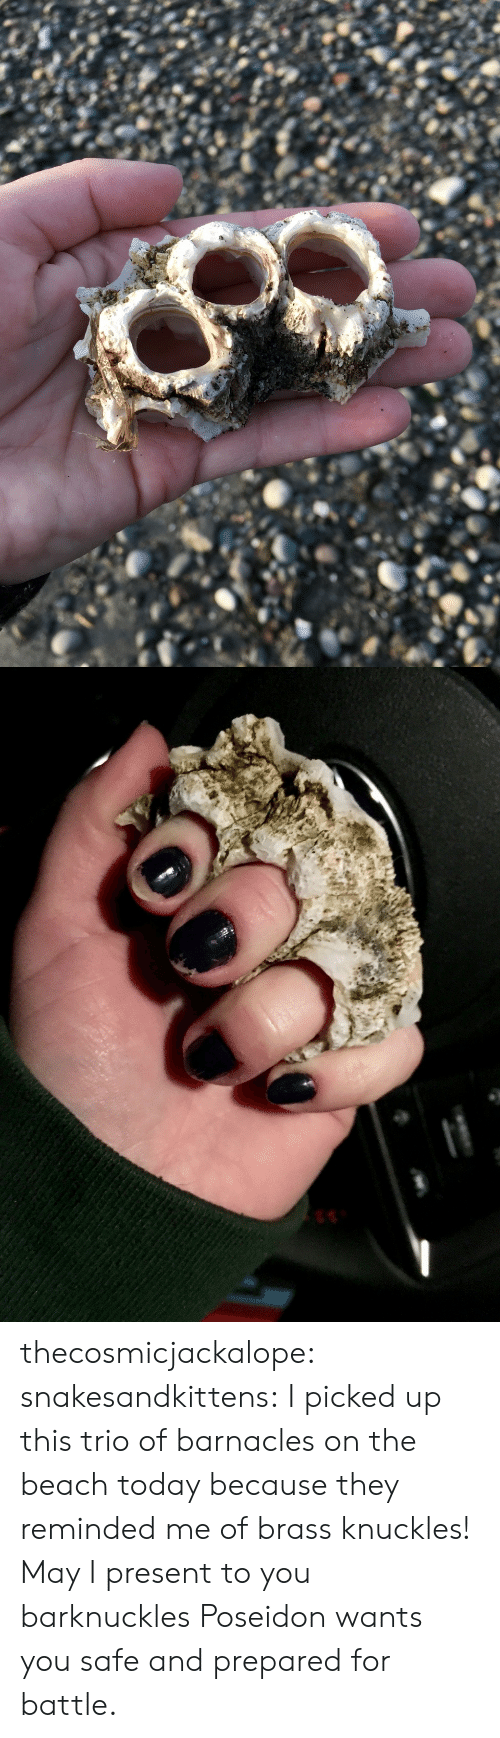 brass: thecosmicjackalope: snakesandkittens:  I picked up this trio of barnacles on the beach today because they reminded me of brass knuckles! May I present to you  barknuckles  Poseidon wants you safe and prepared for battle.